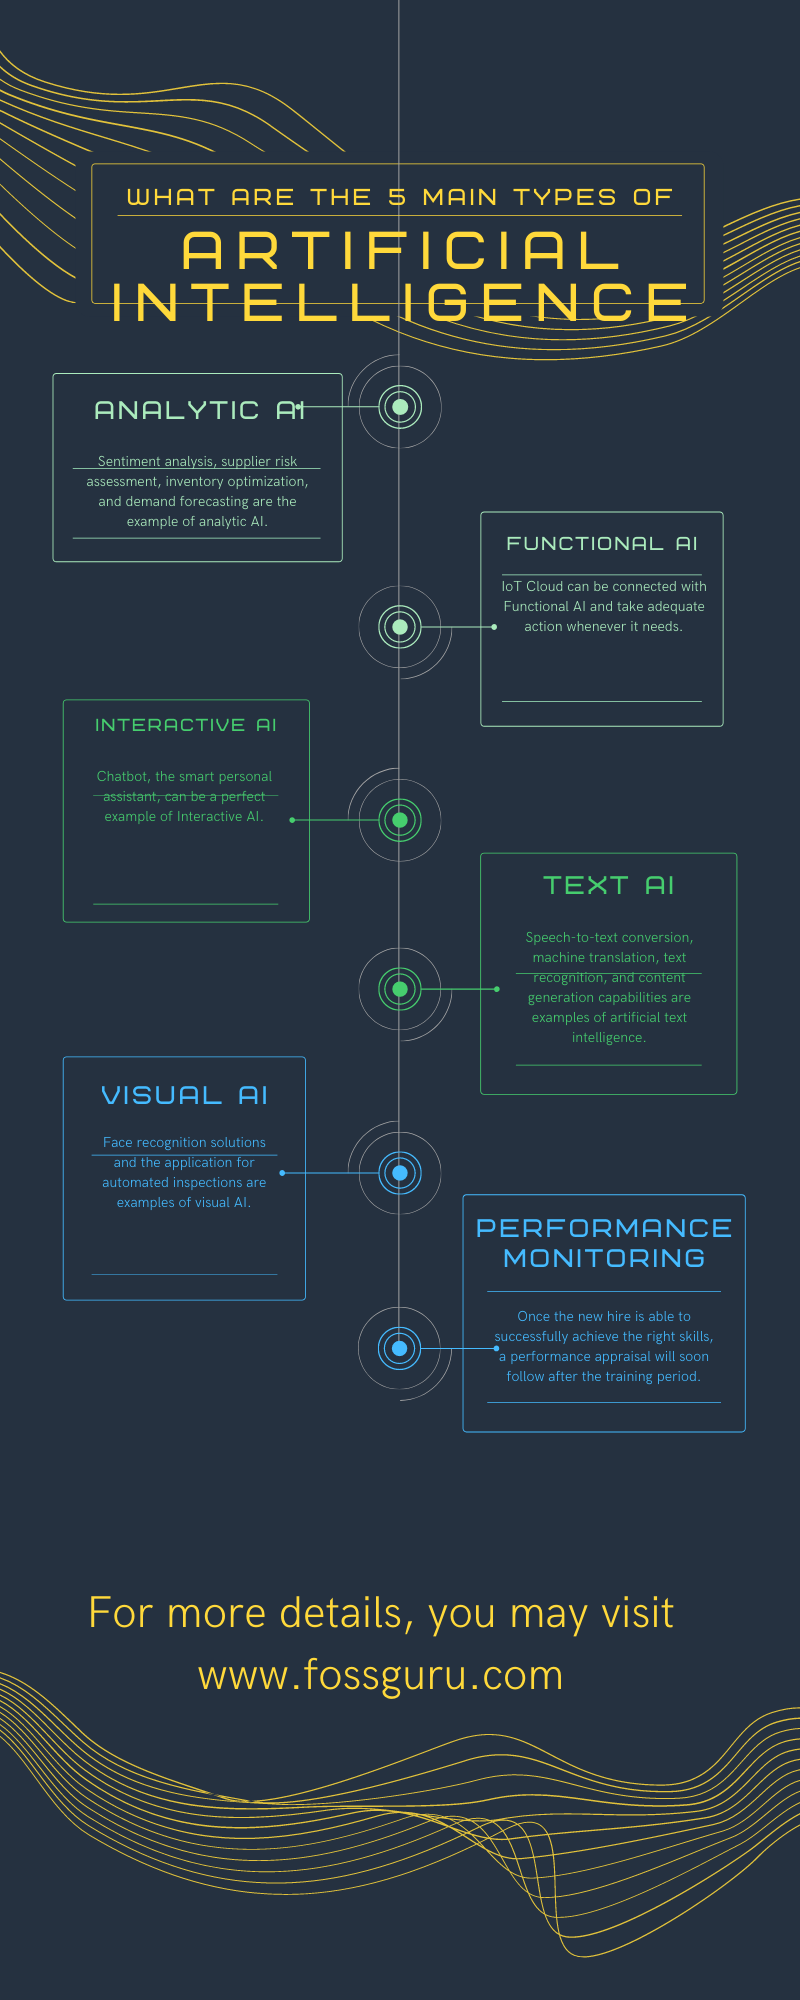 What are the 5 main types of artificial intelligence